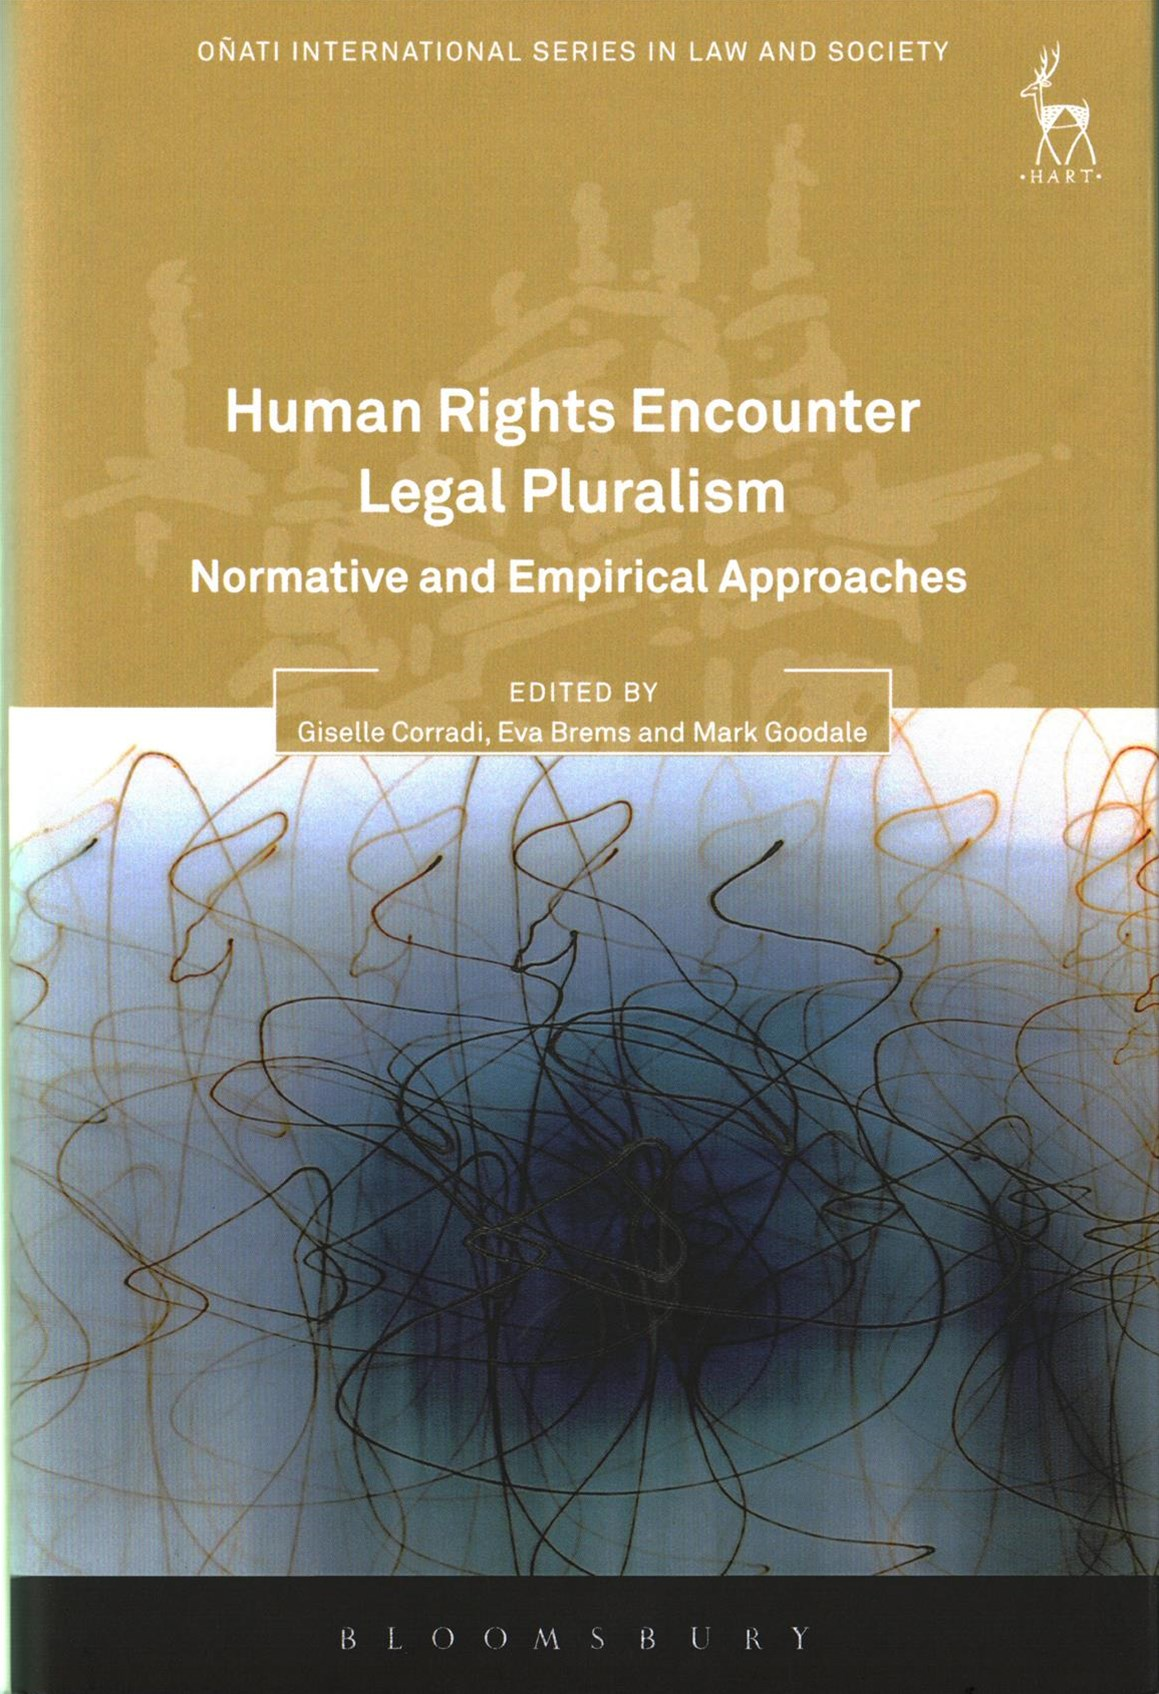 Human Rights Encounter Legal Pluralism